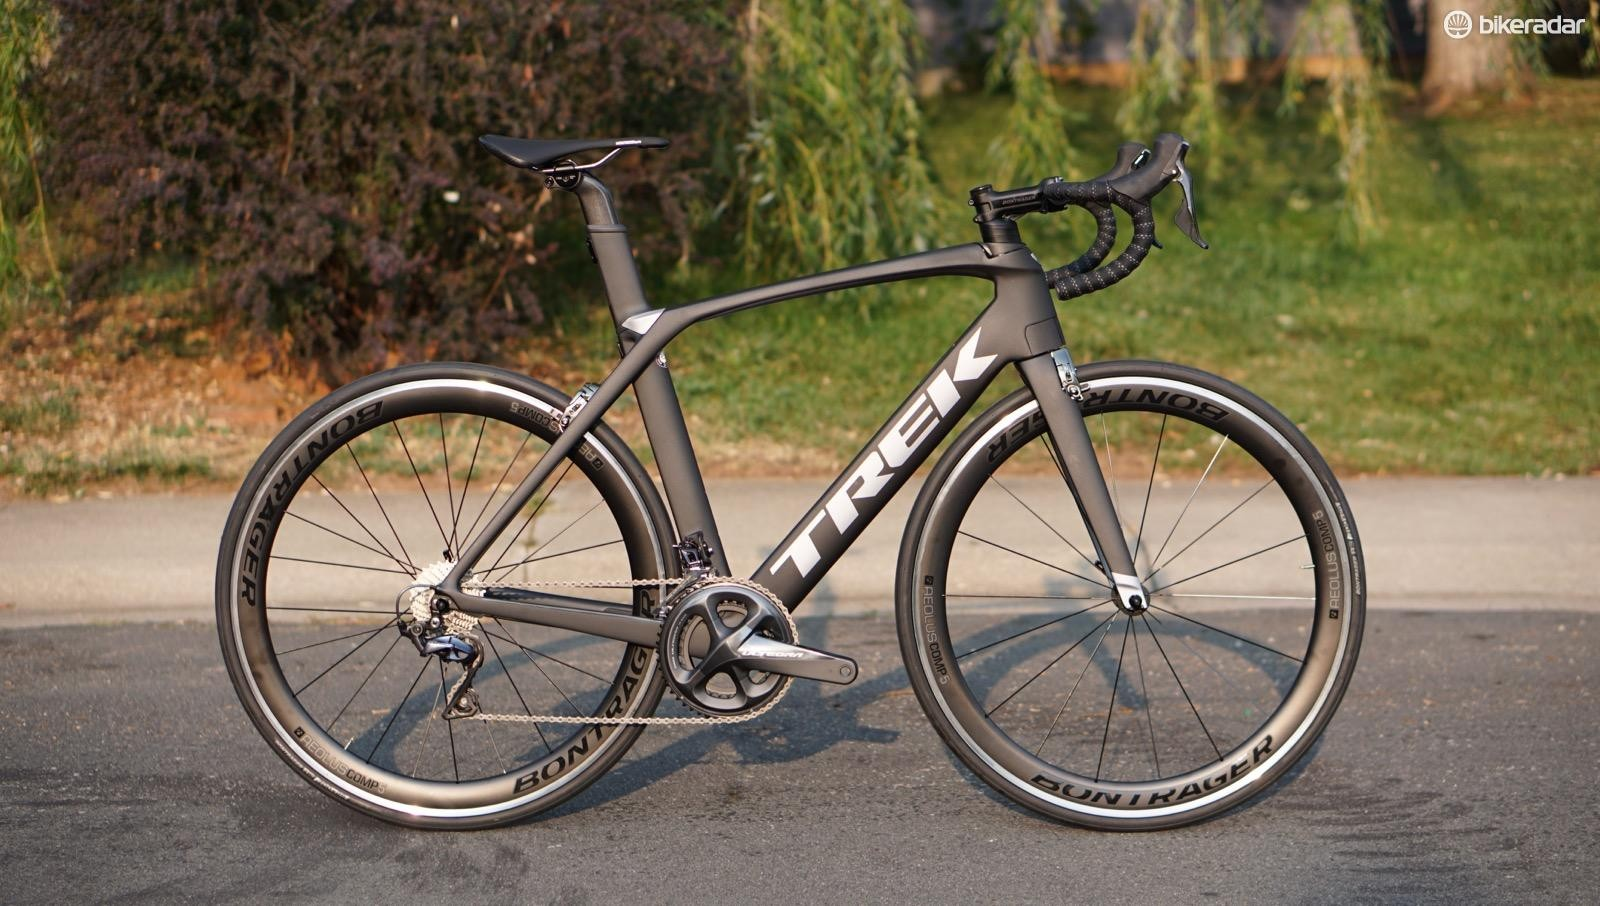 The Trek Madone 9.0 is the most inexpensive aero bike in the range, with a separate handlebar instead of the integrated bar/stem cockpit that comes on the higher-end models